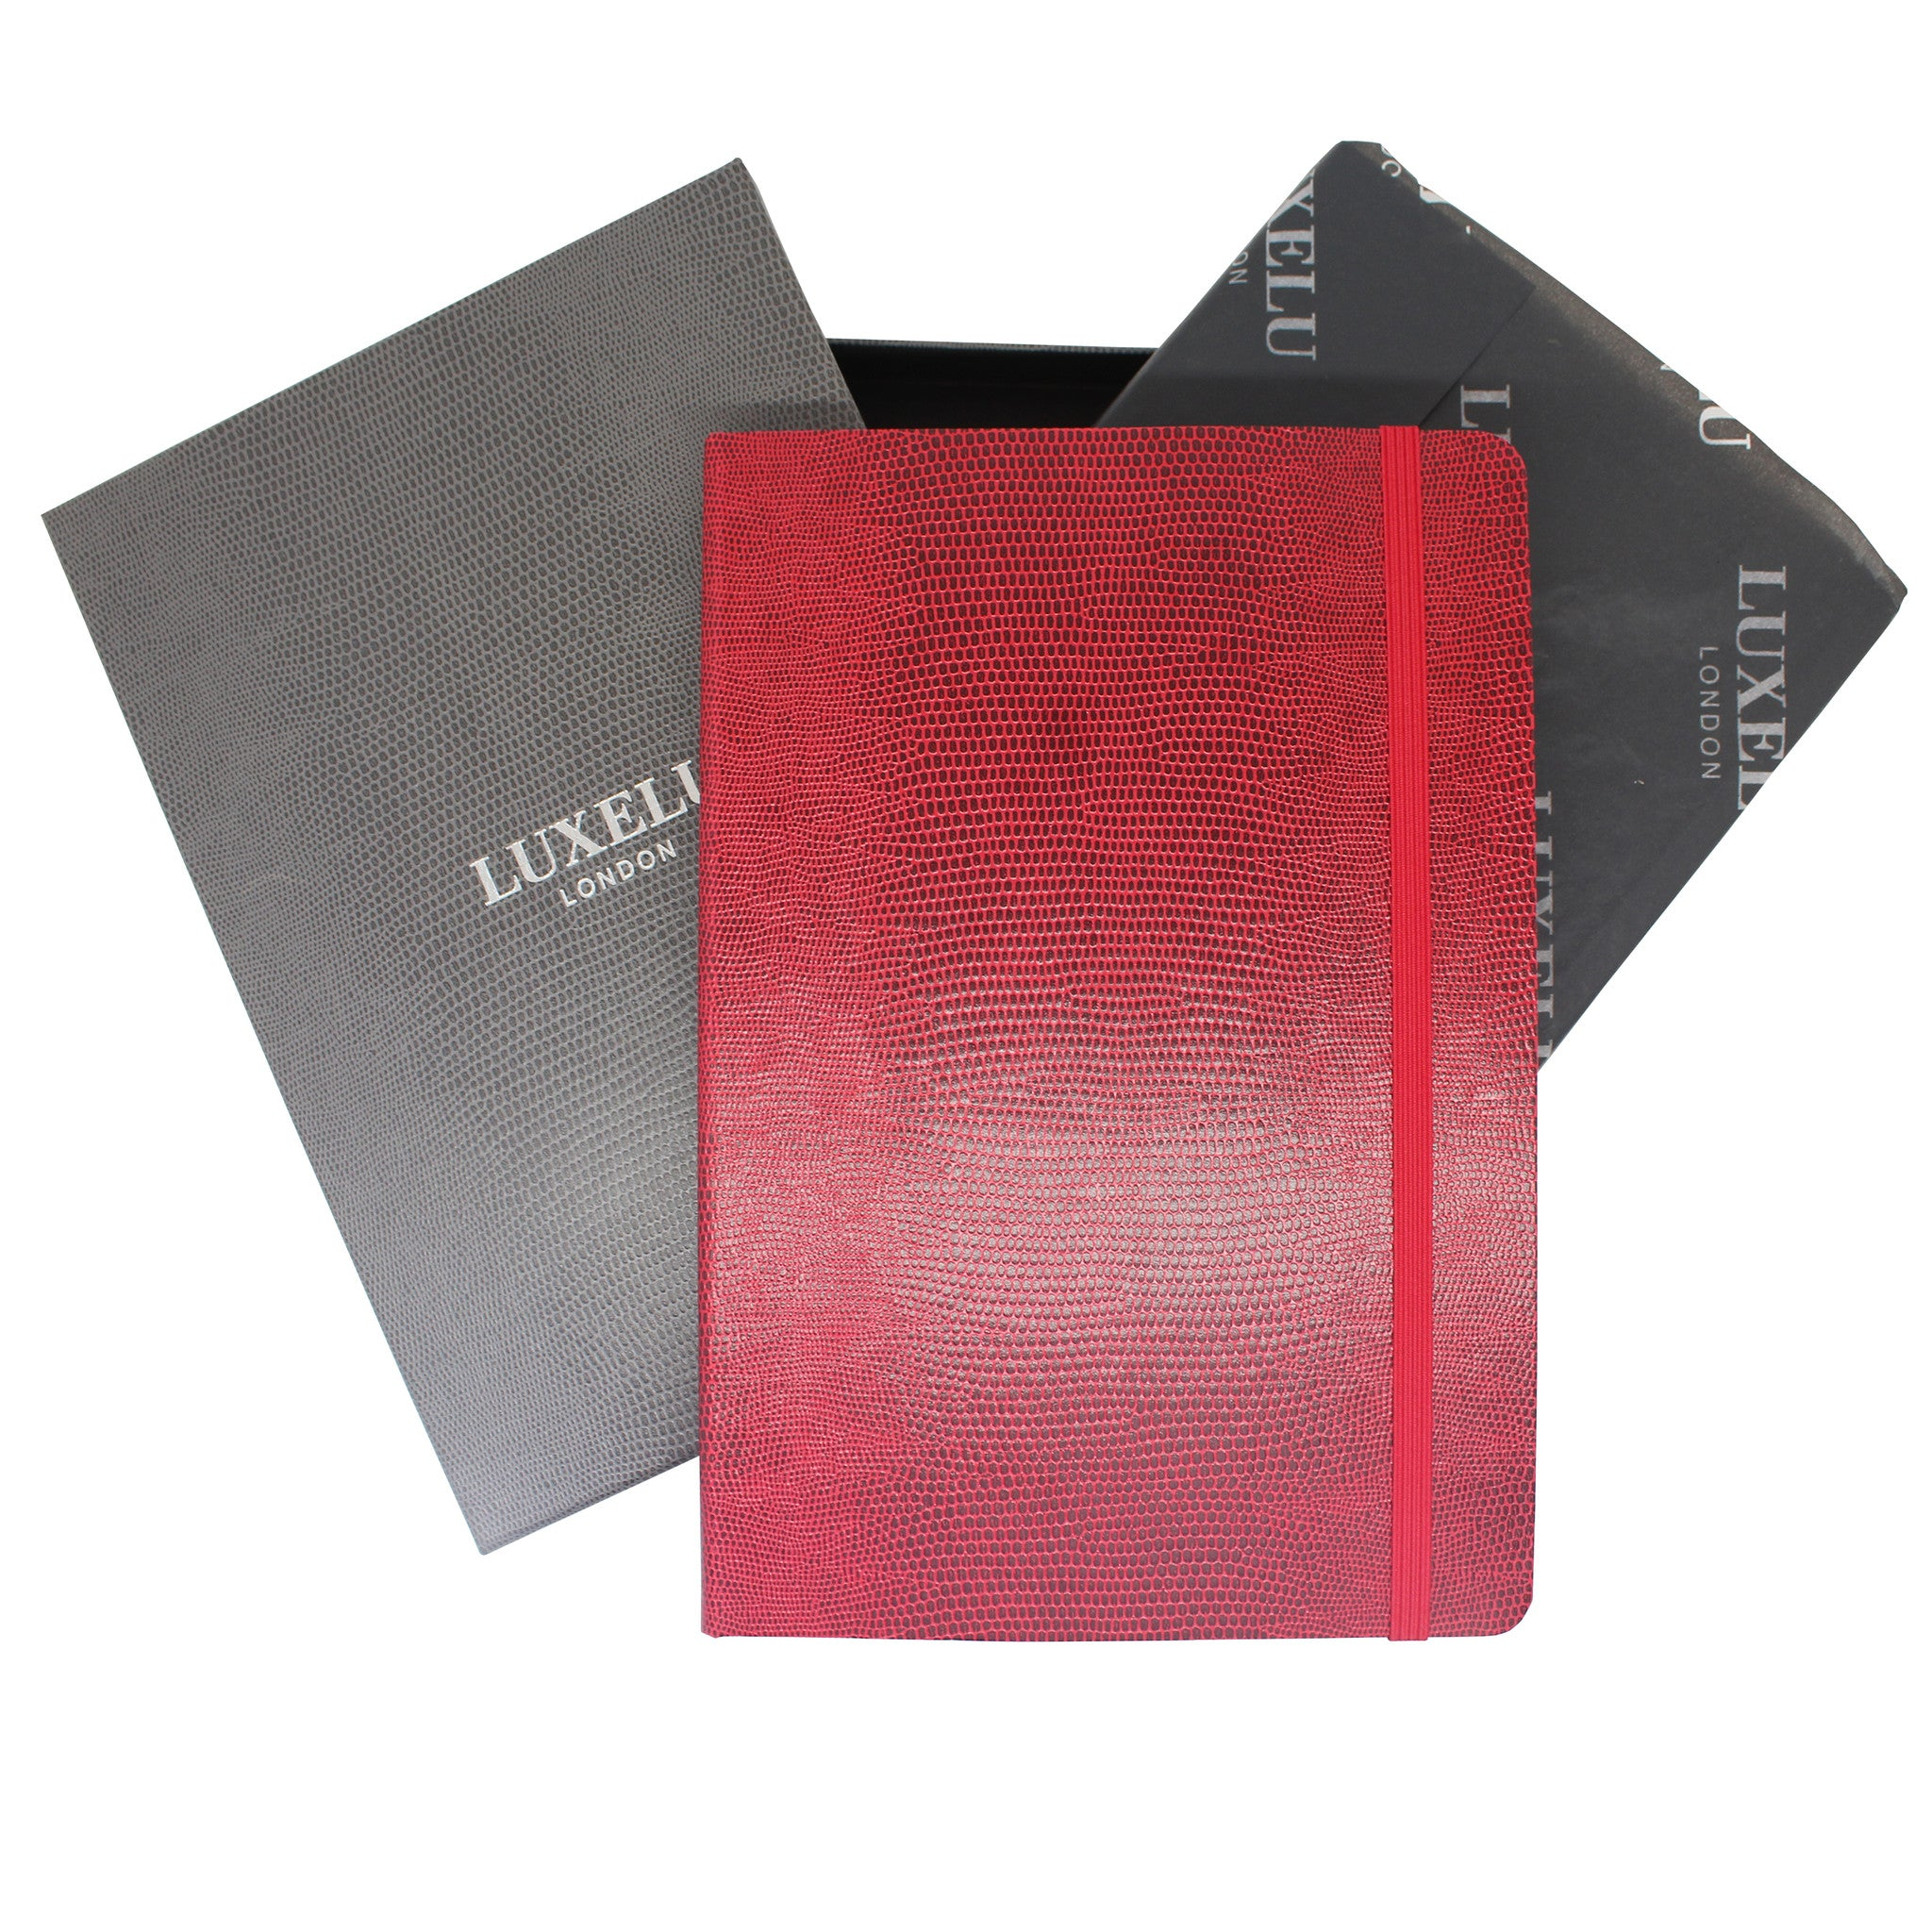 Signature Collection : Luxury A6 Notebook